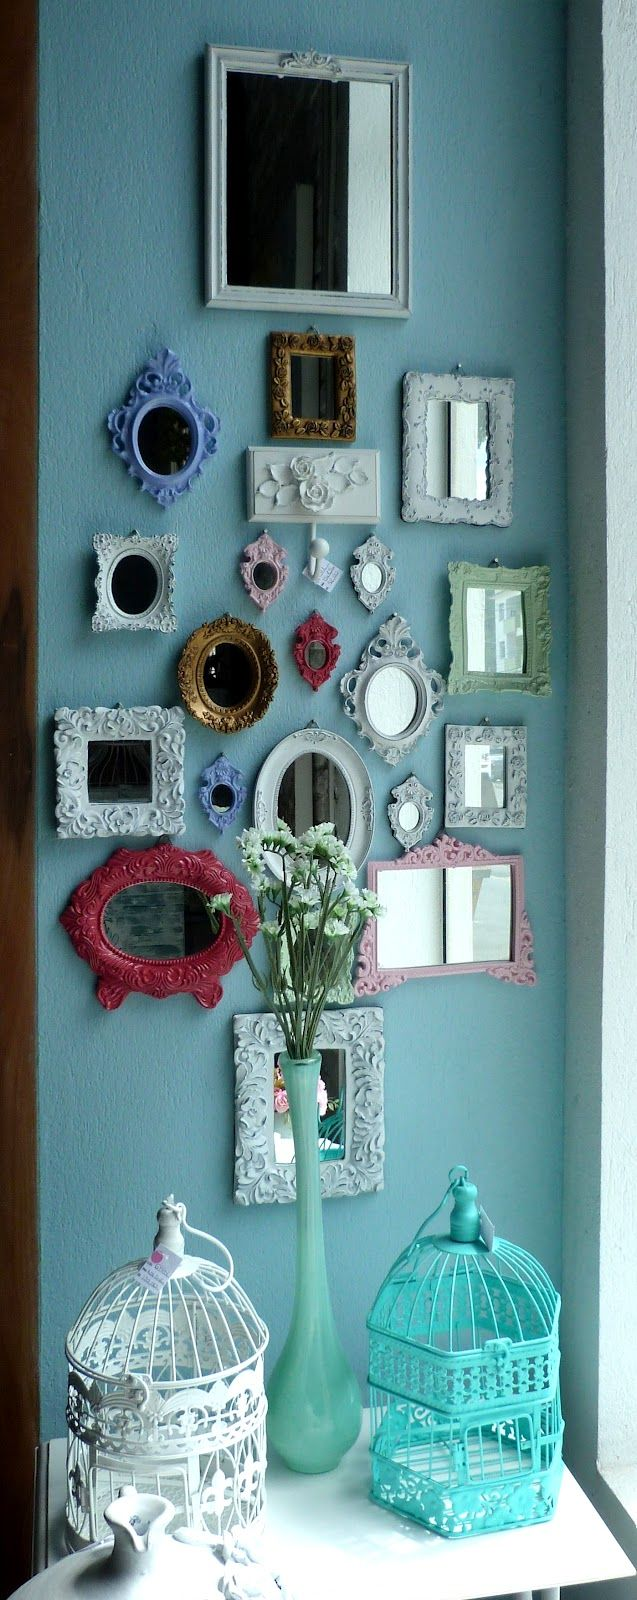 mirrors on the wall https://vidaeartedesign.blogspot.com.br/2012_03_01_archive.html